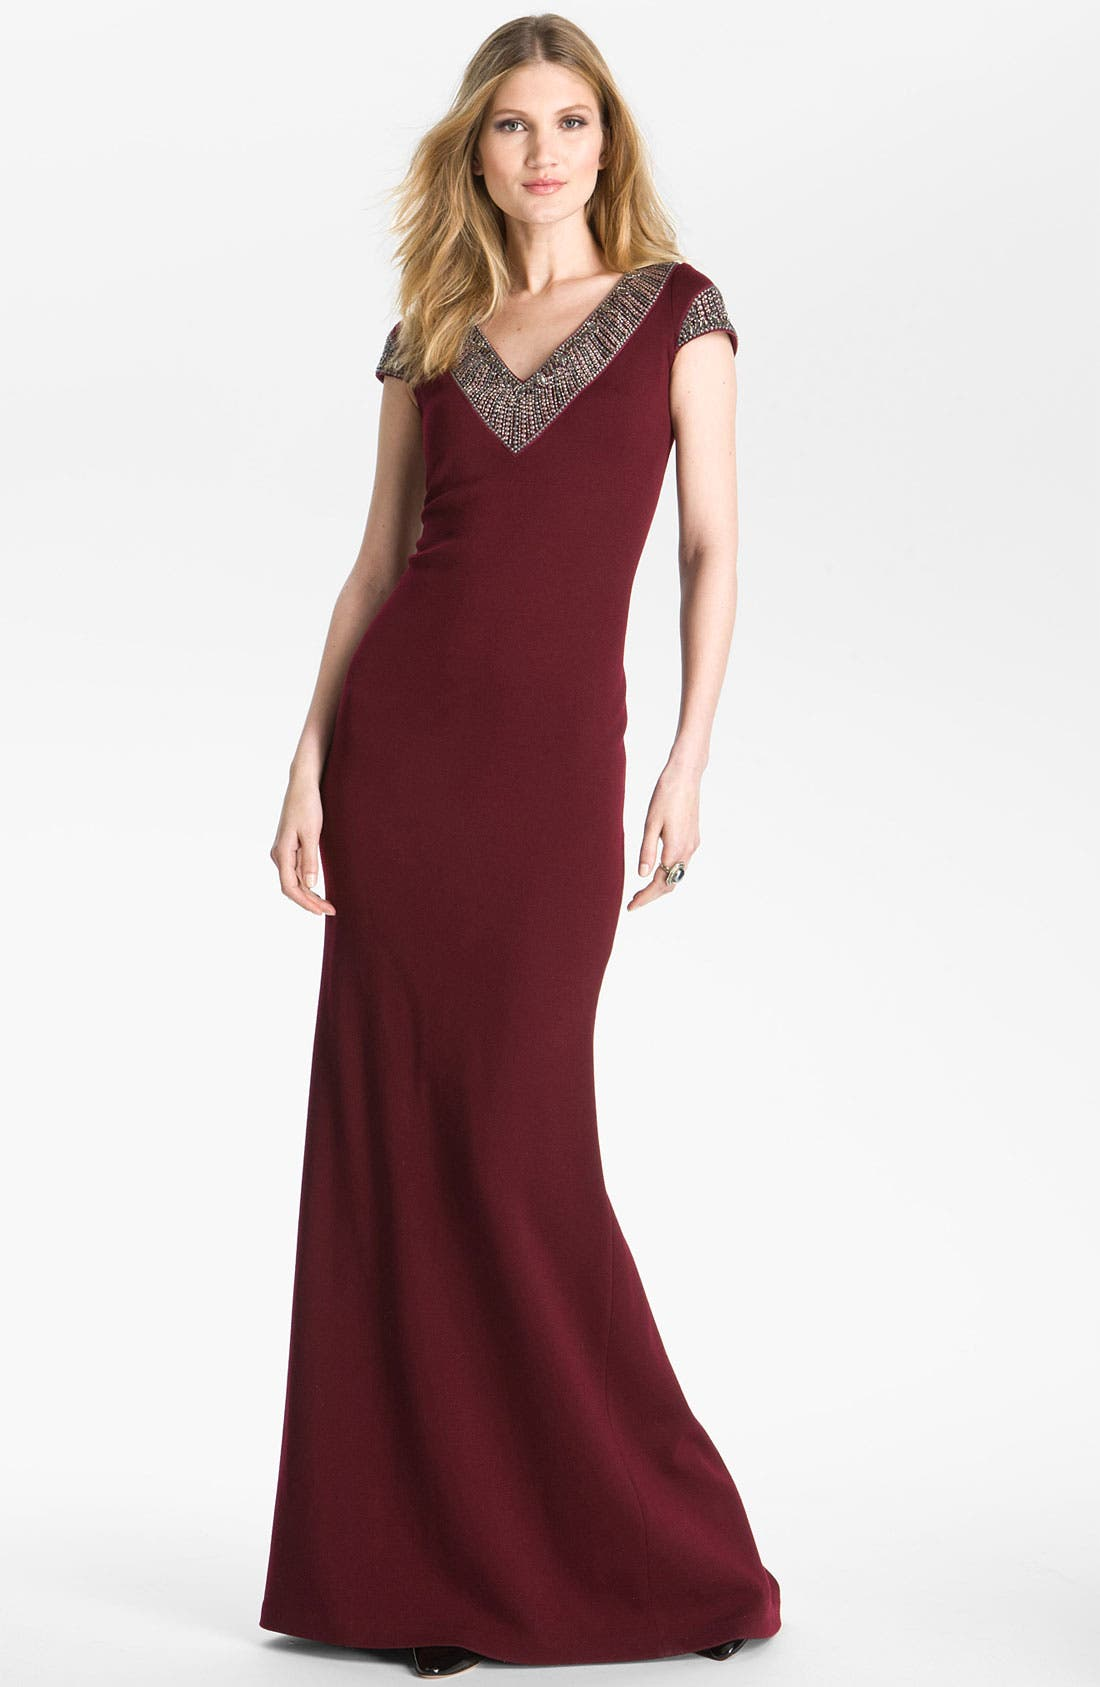 Main Image - St. John Collection Beaded Milano Knit Gown